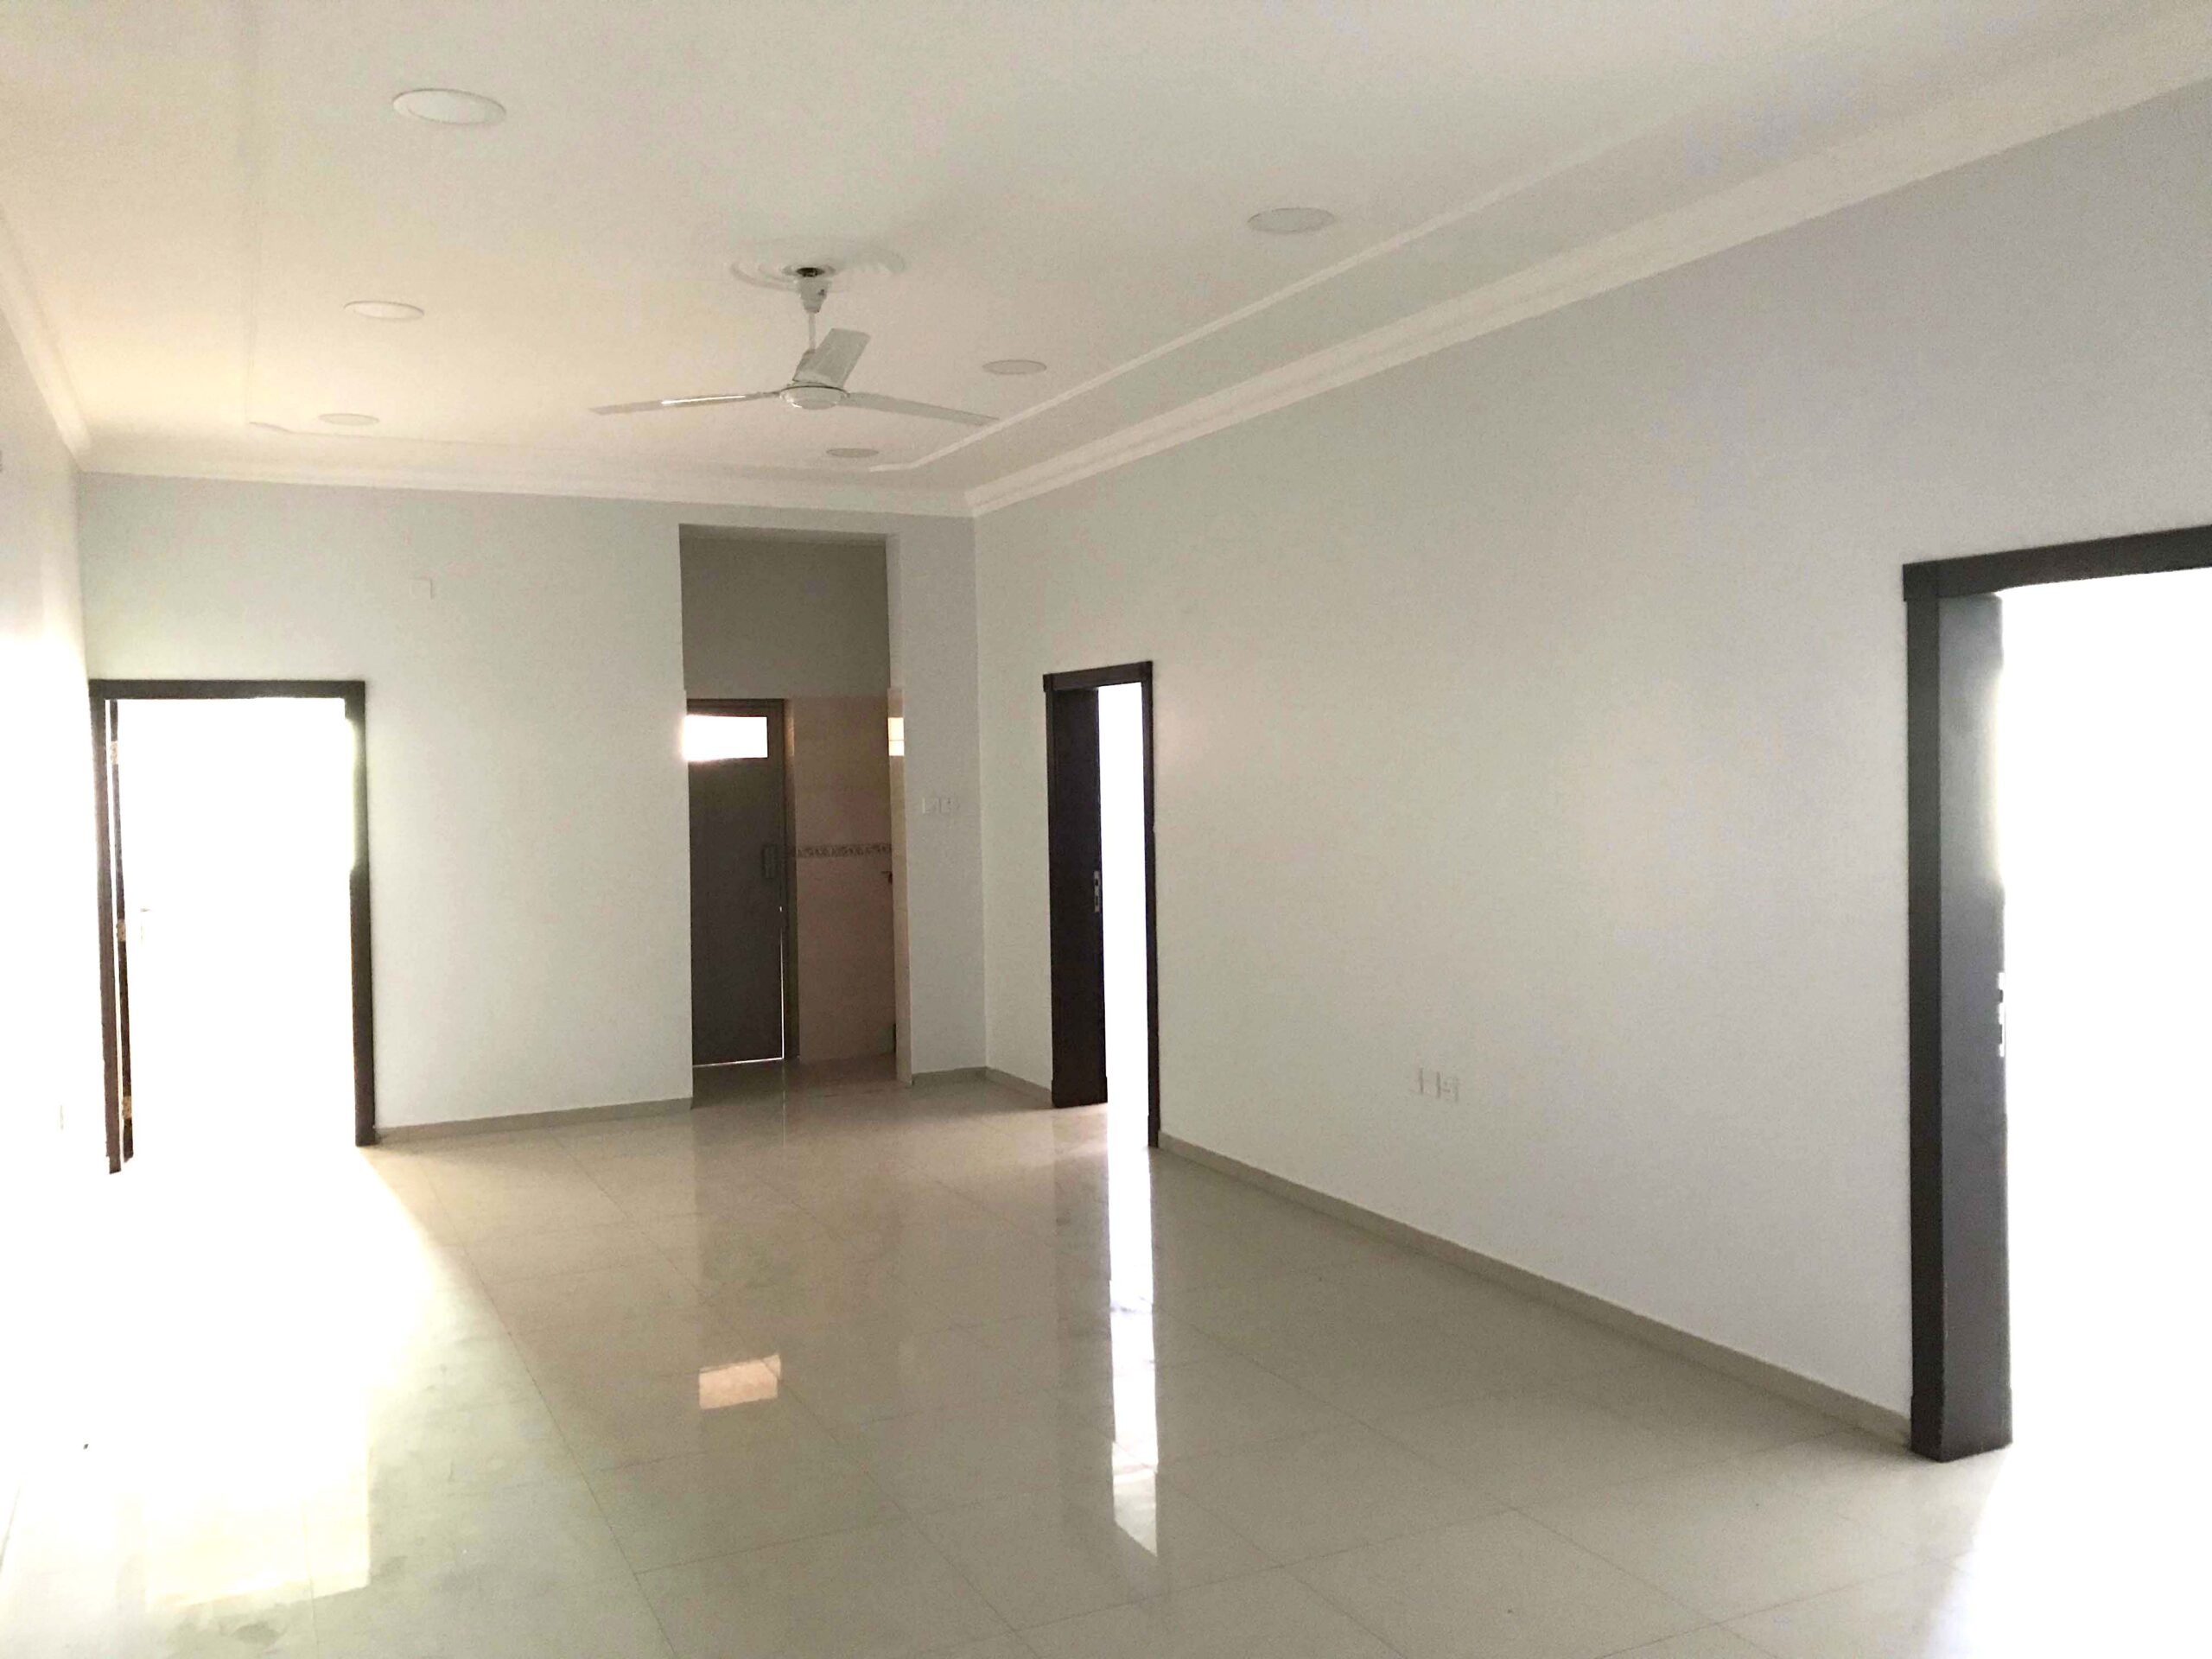 Flat for rent located in Moqsha Town